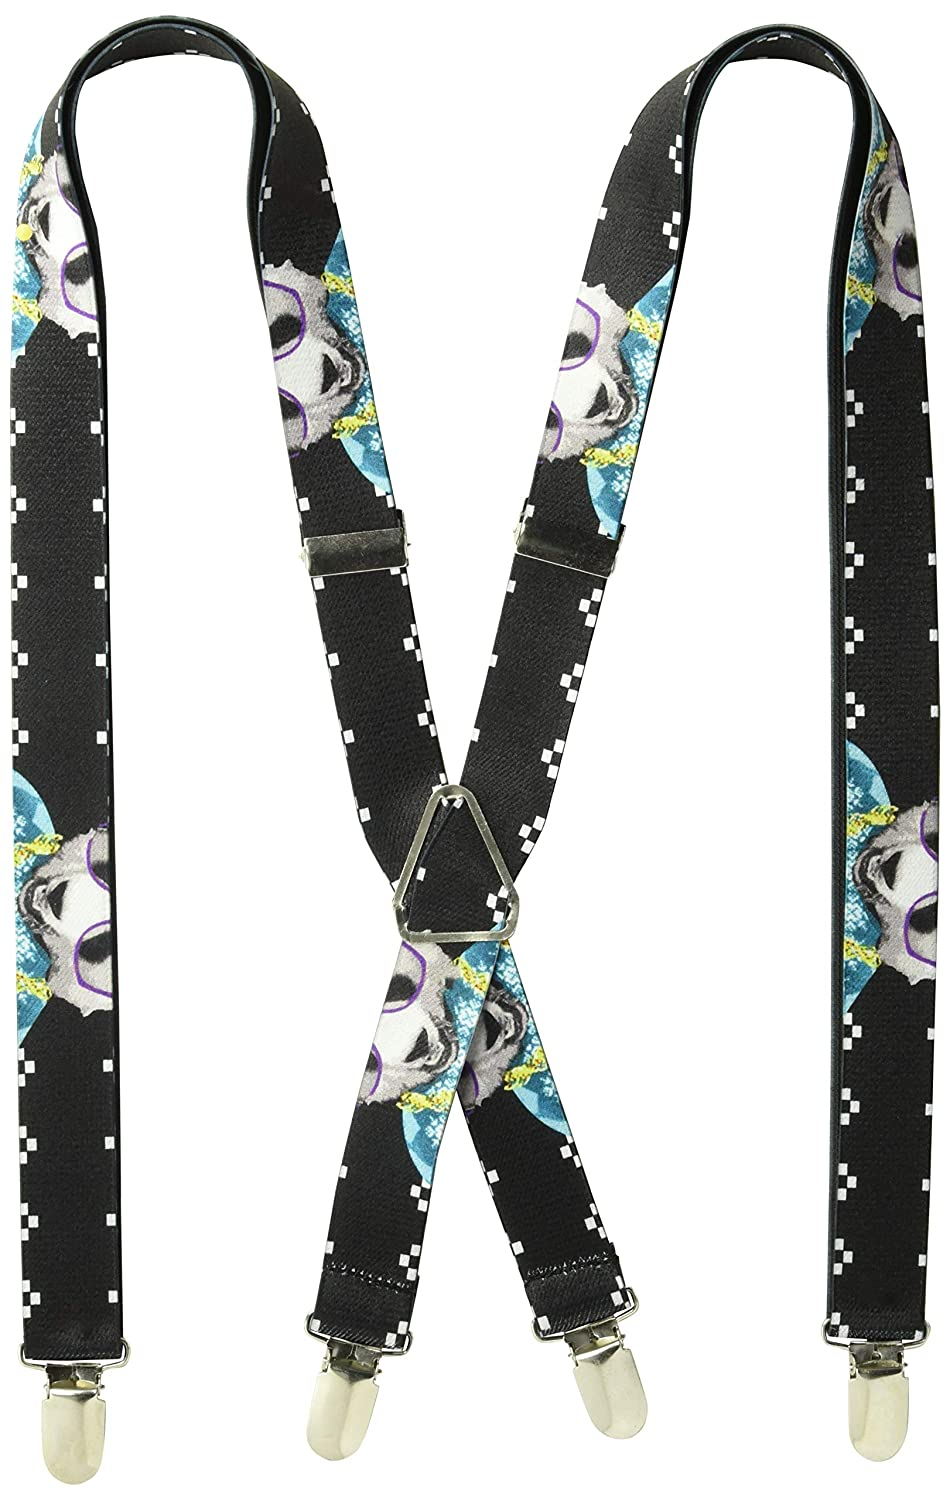 Buckle-Down Suspender - Panda SP-W34232